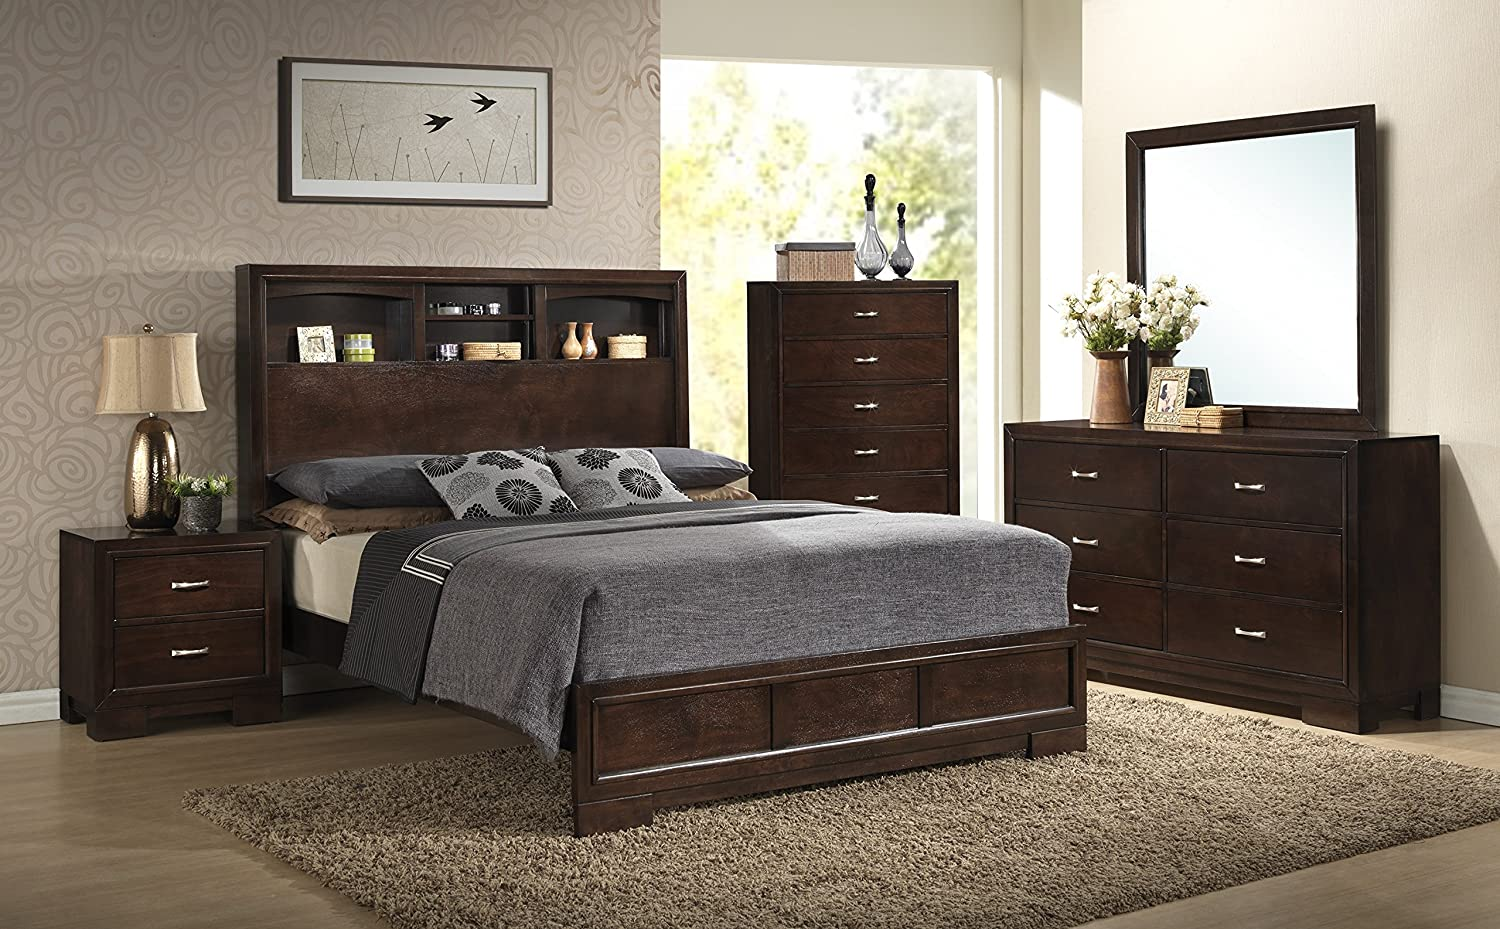 Wood bedroom furniture sets - Amazon Com Roundhill Furniture Montana Modern 5 Piece Wood Bedroom Set With Bed Dresser Mirror Nightstand Chest King Walnut Kitchen Dining